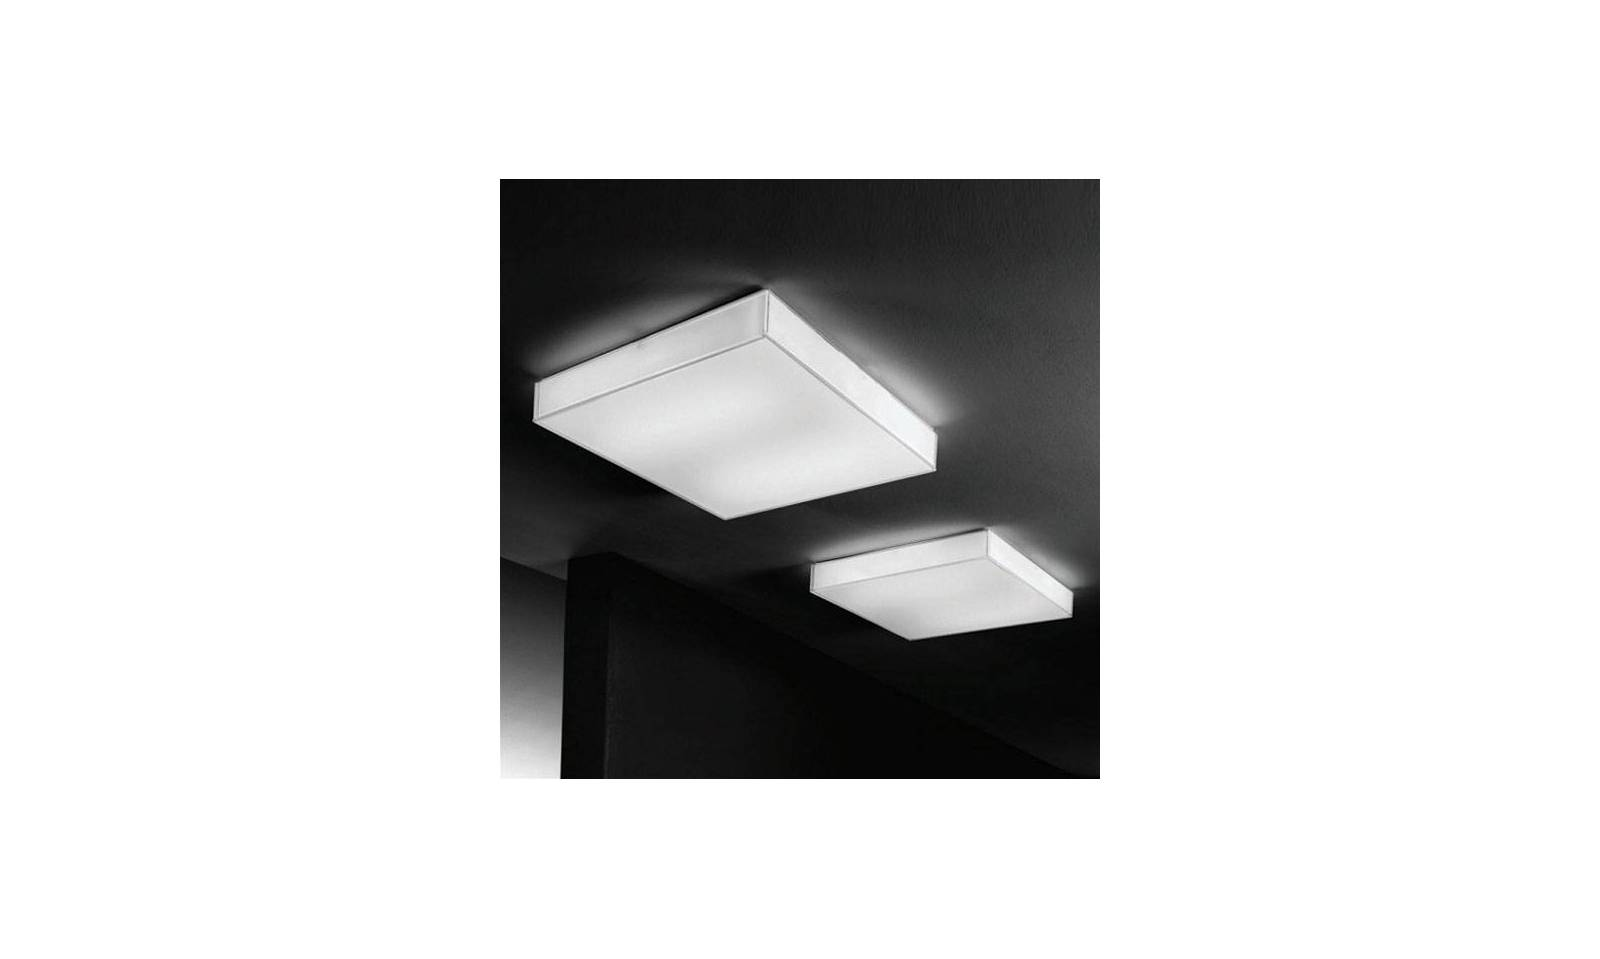 Plafoniere Per Box : Linea light plafoniera moderna in metallo serie box